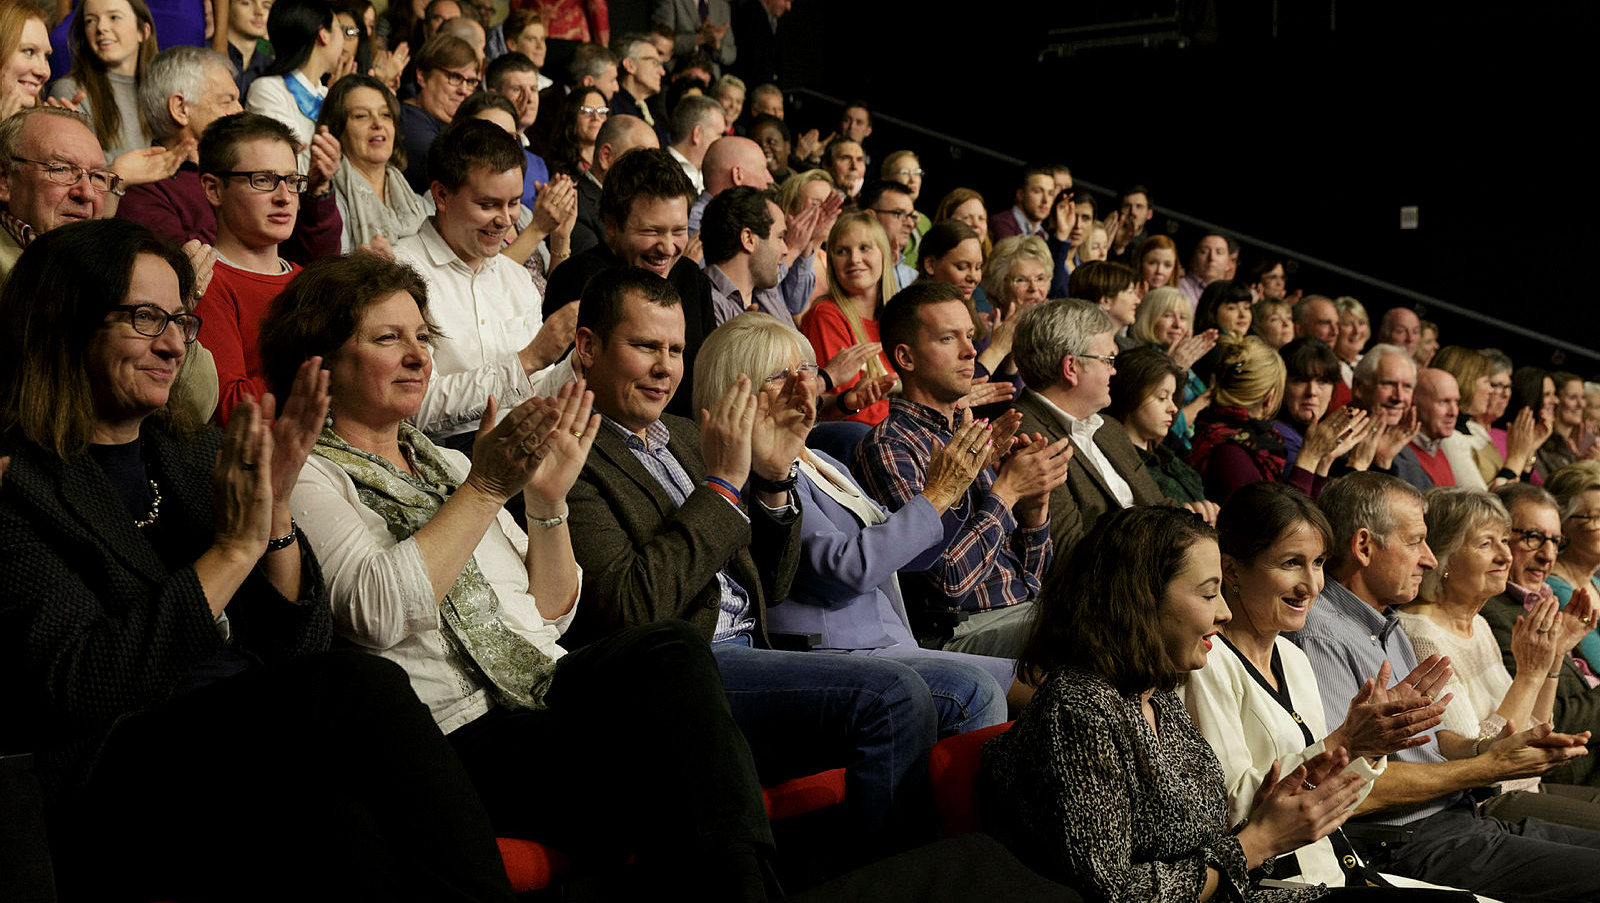 An audience applauding in The Edge theatre